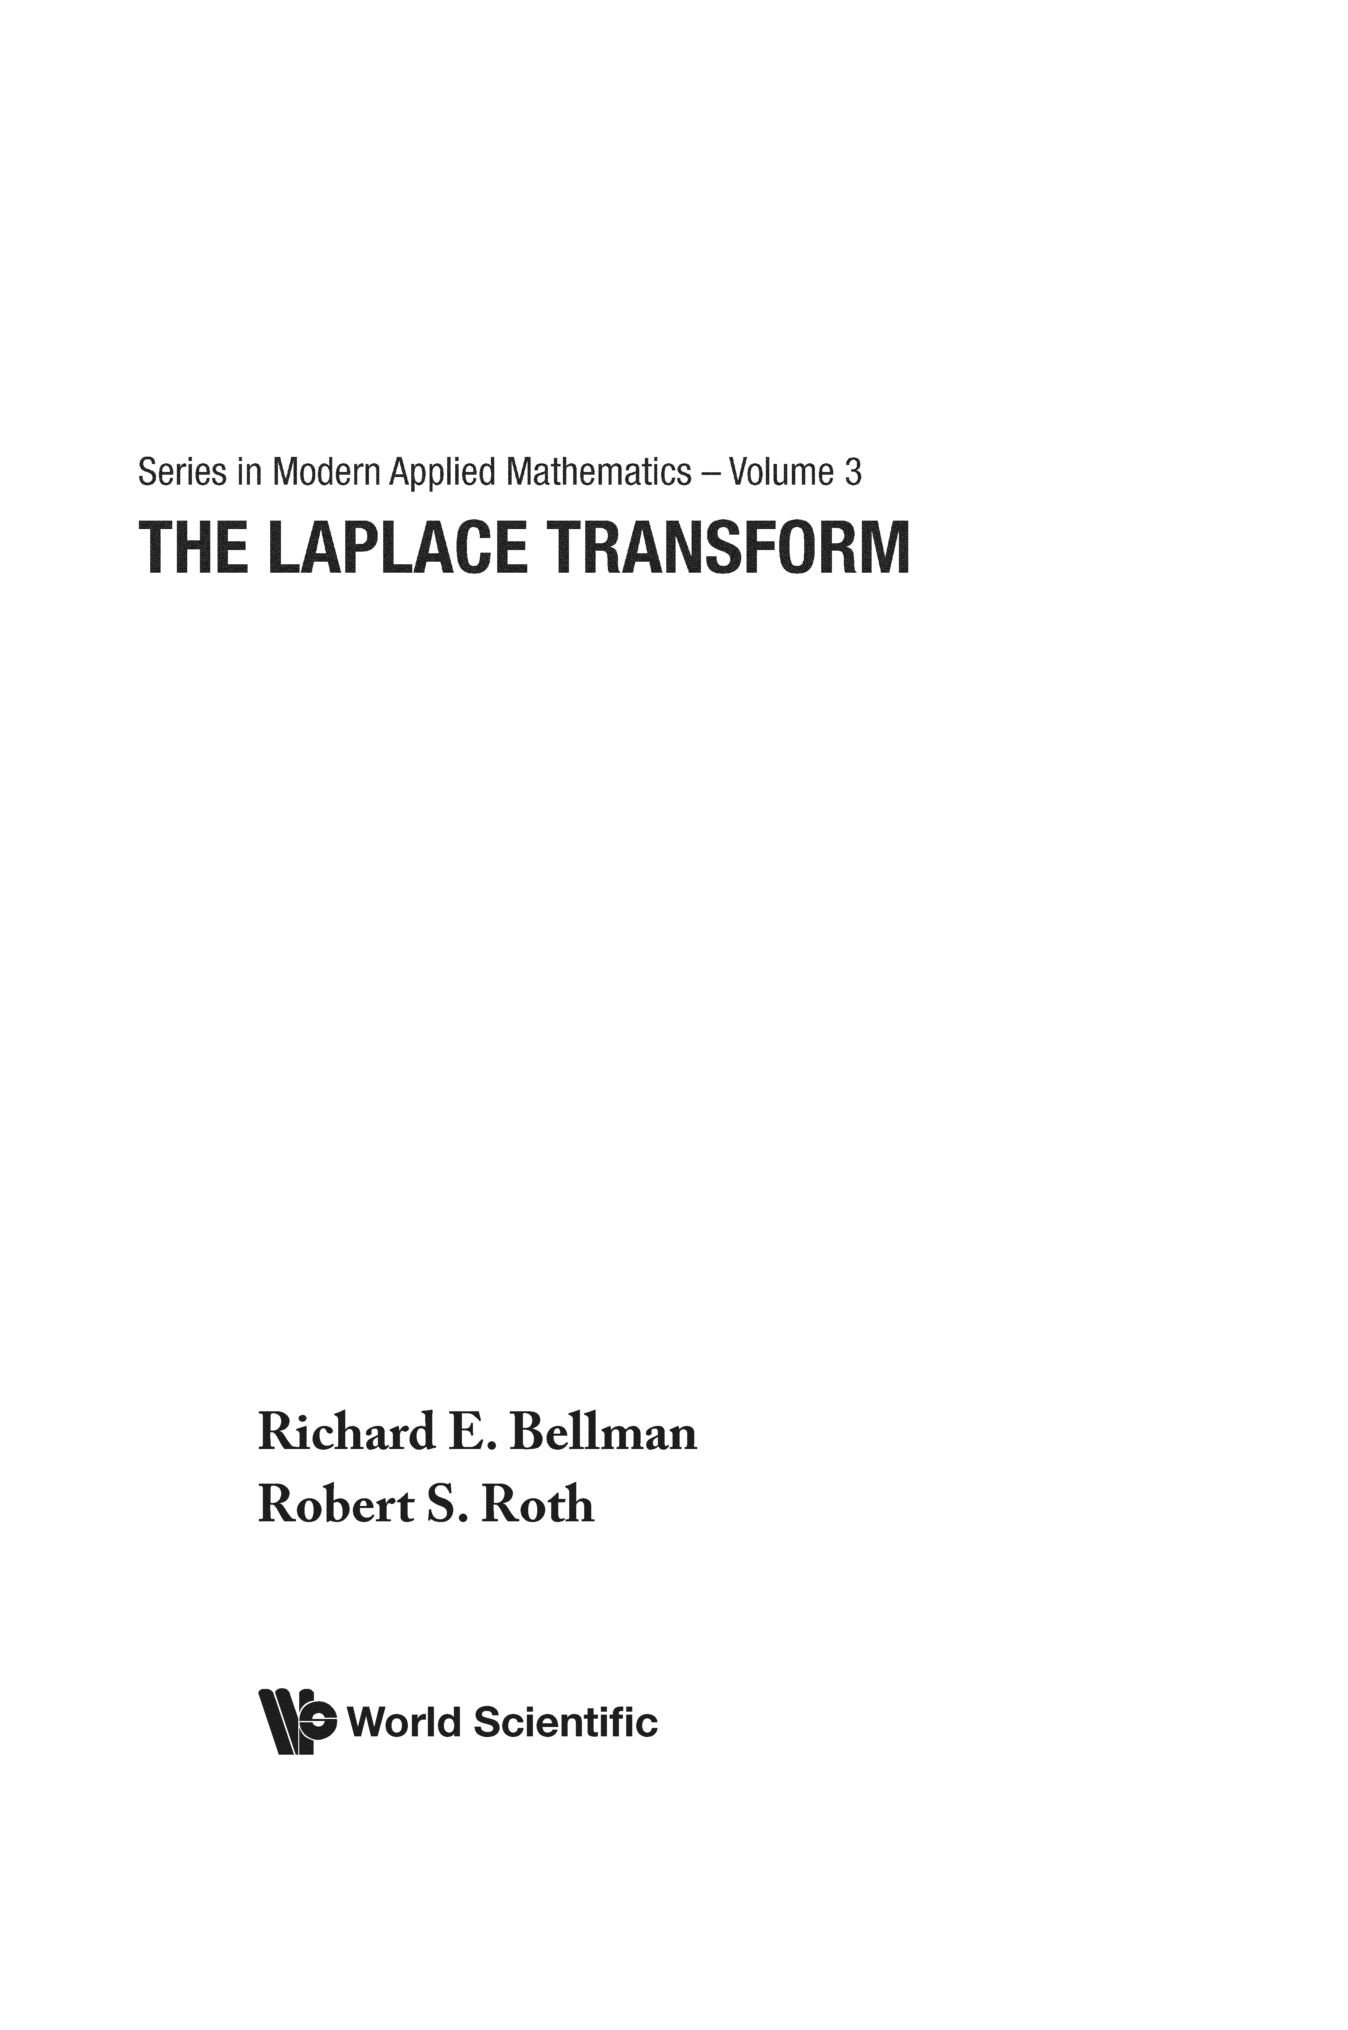 Laplace Transform, The (Series in Modern Applied Mathematics)